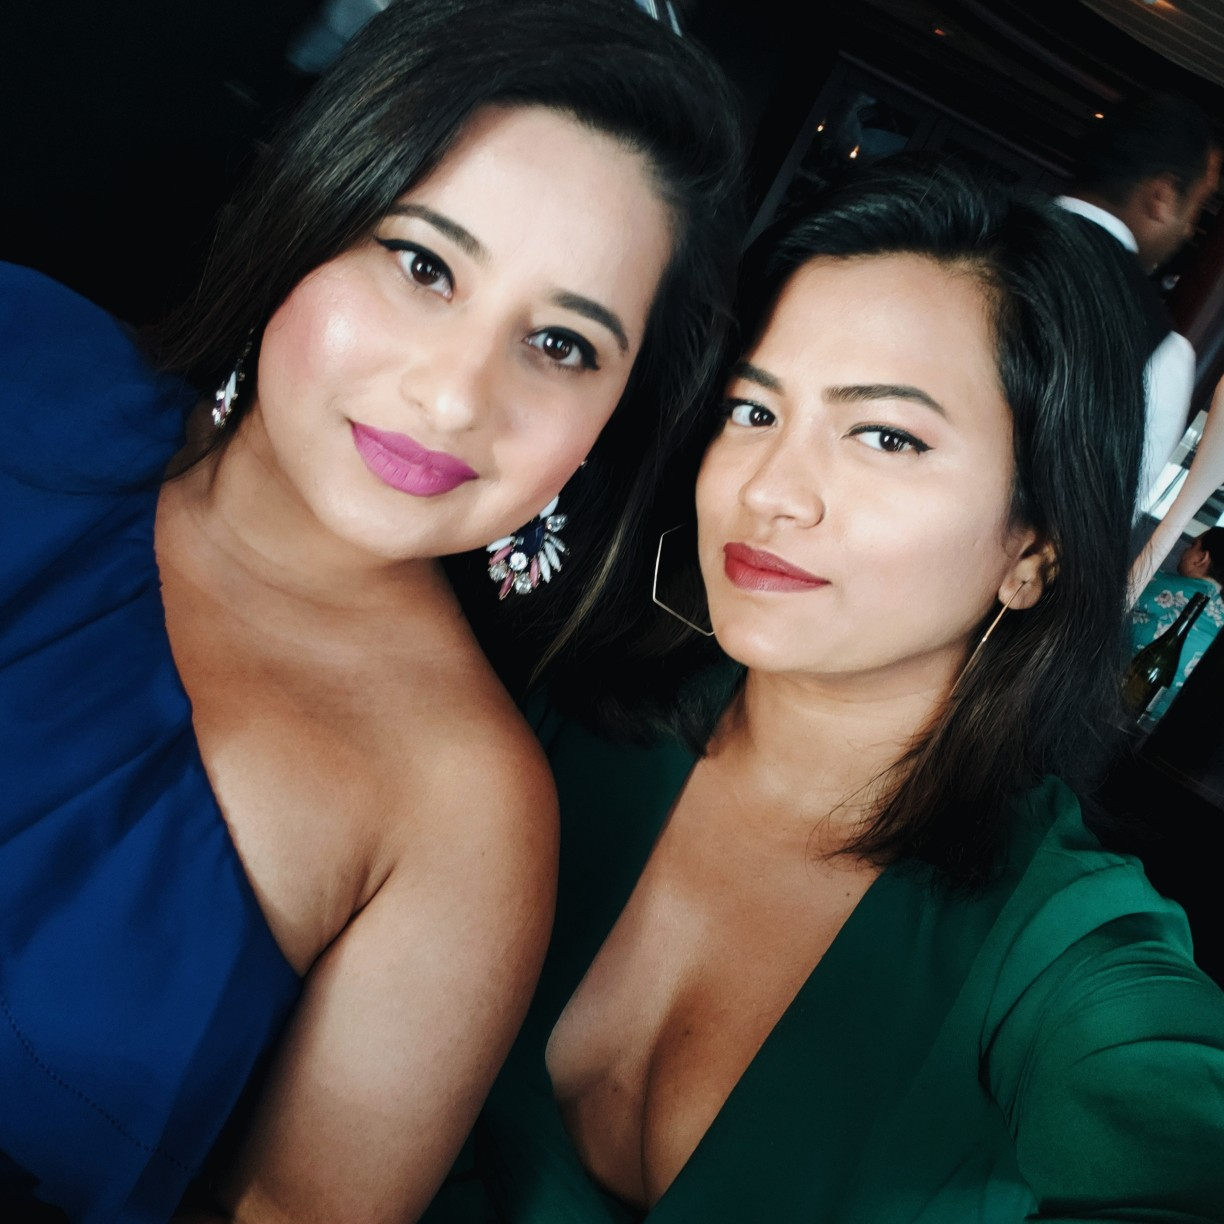 Best Friends in Blue and Green Dress Desi Girls